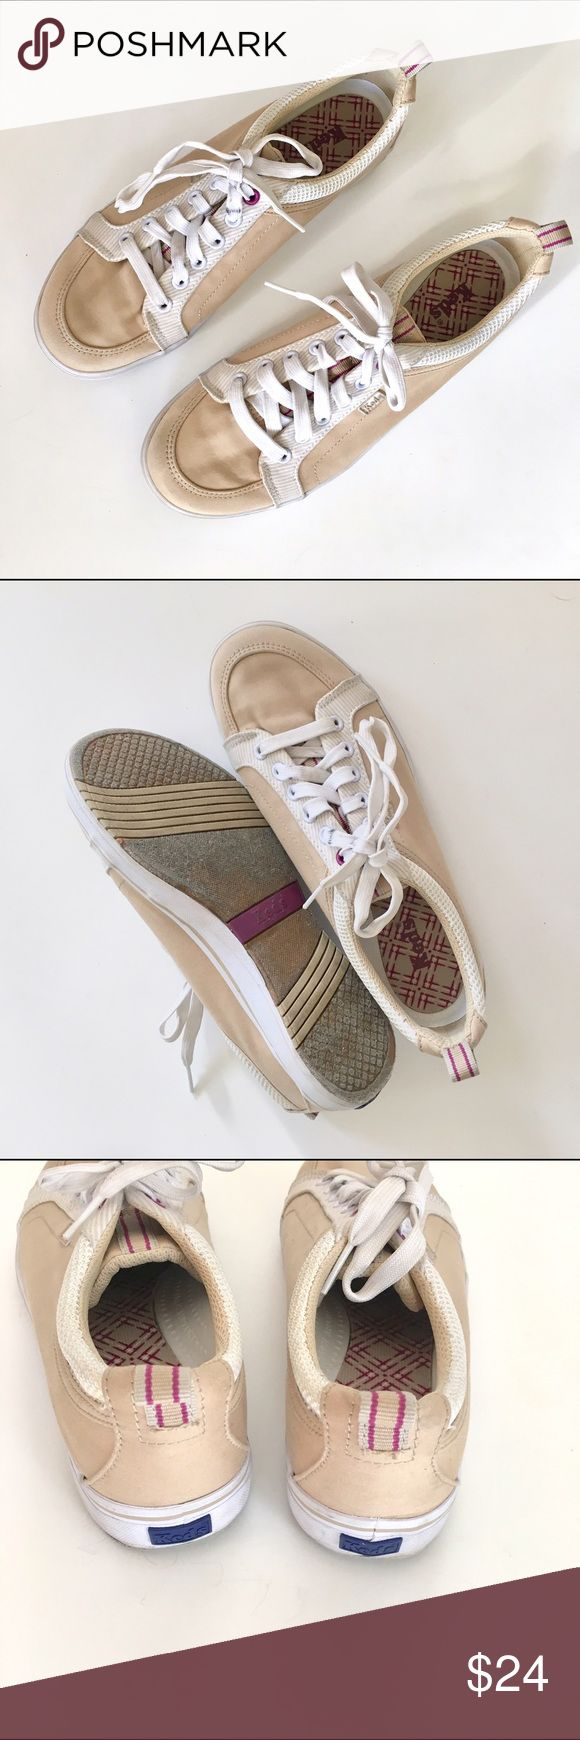 Keds lace up tennis shoes Very good condition, almost no signs of wear. Very comfortable sneakers! Add this to a bundle to save 15%. Keds Shoes Sneakers